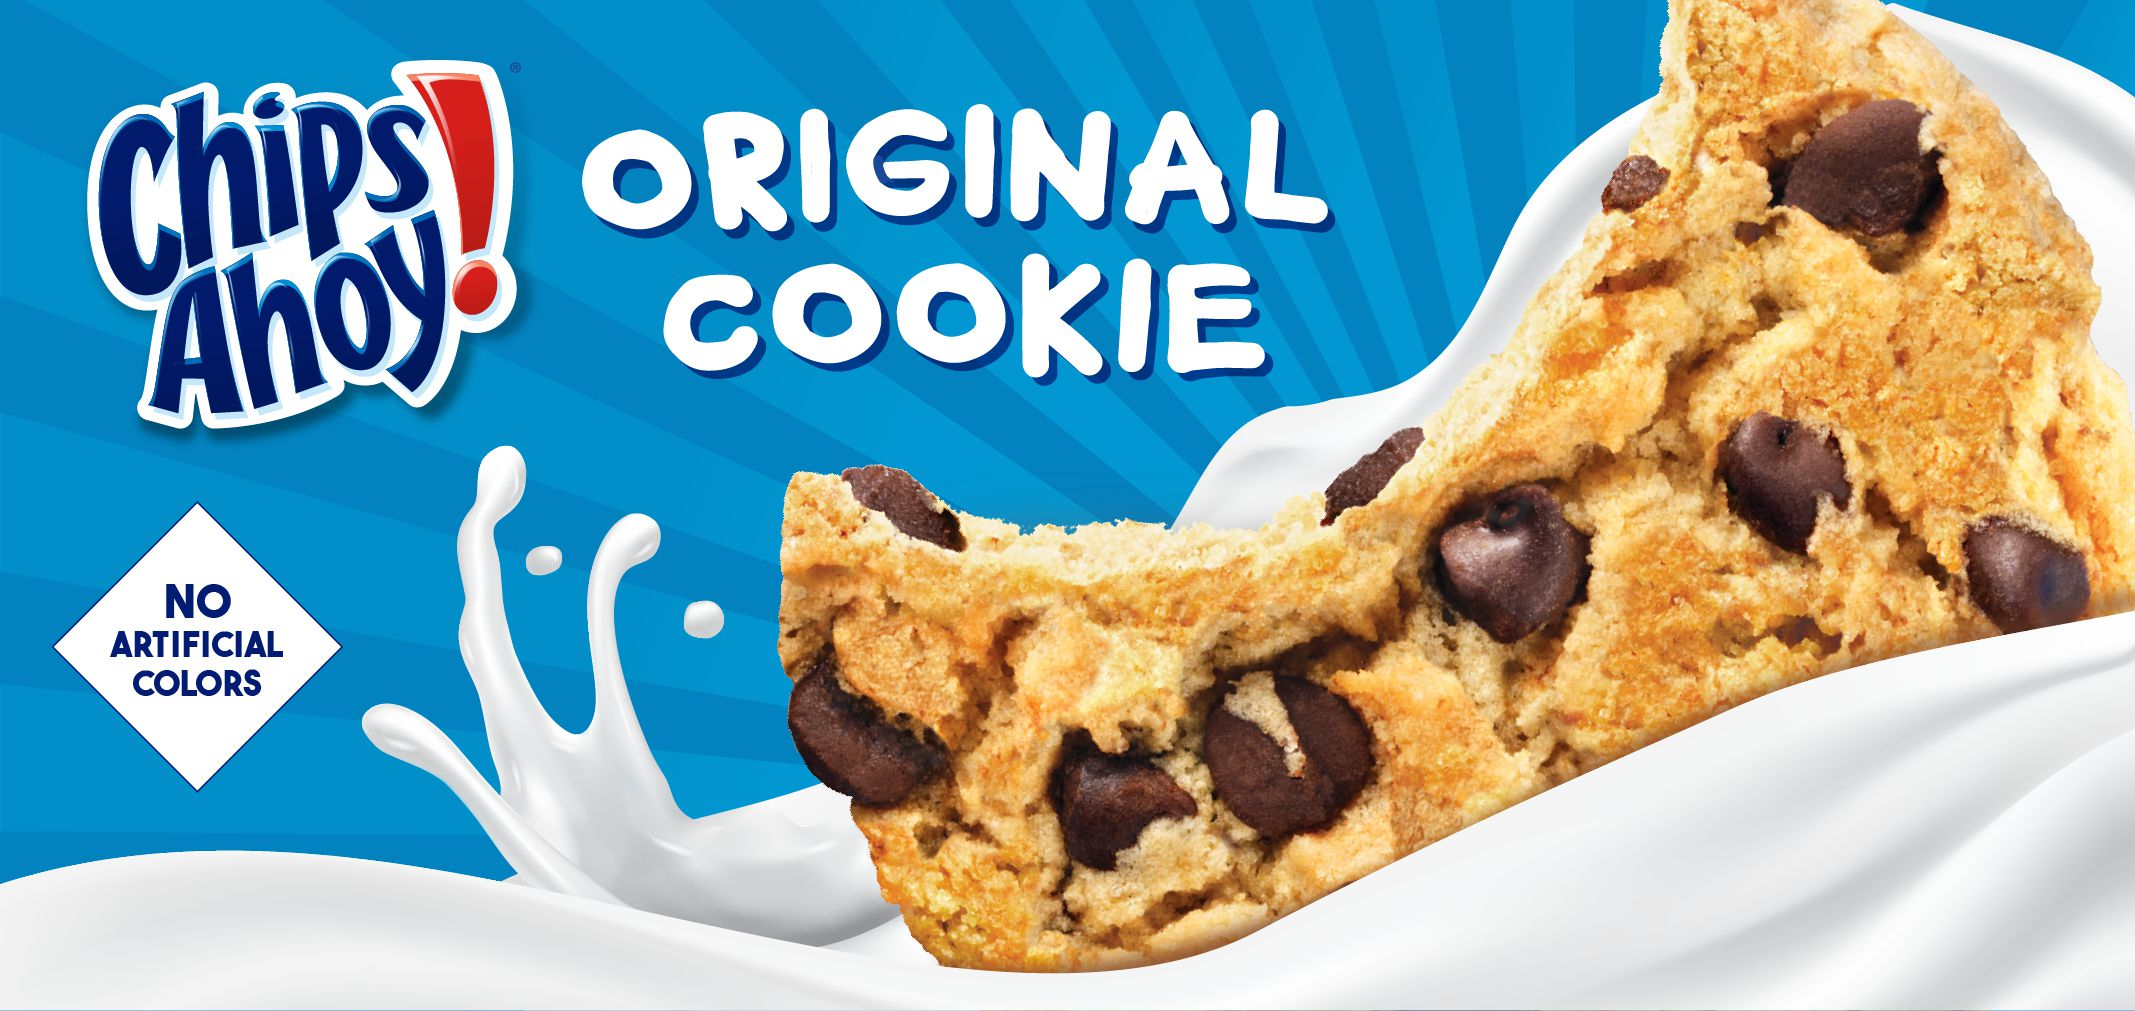 chips ahoy!® original cookie label image